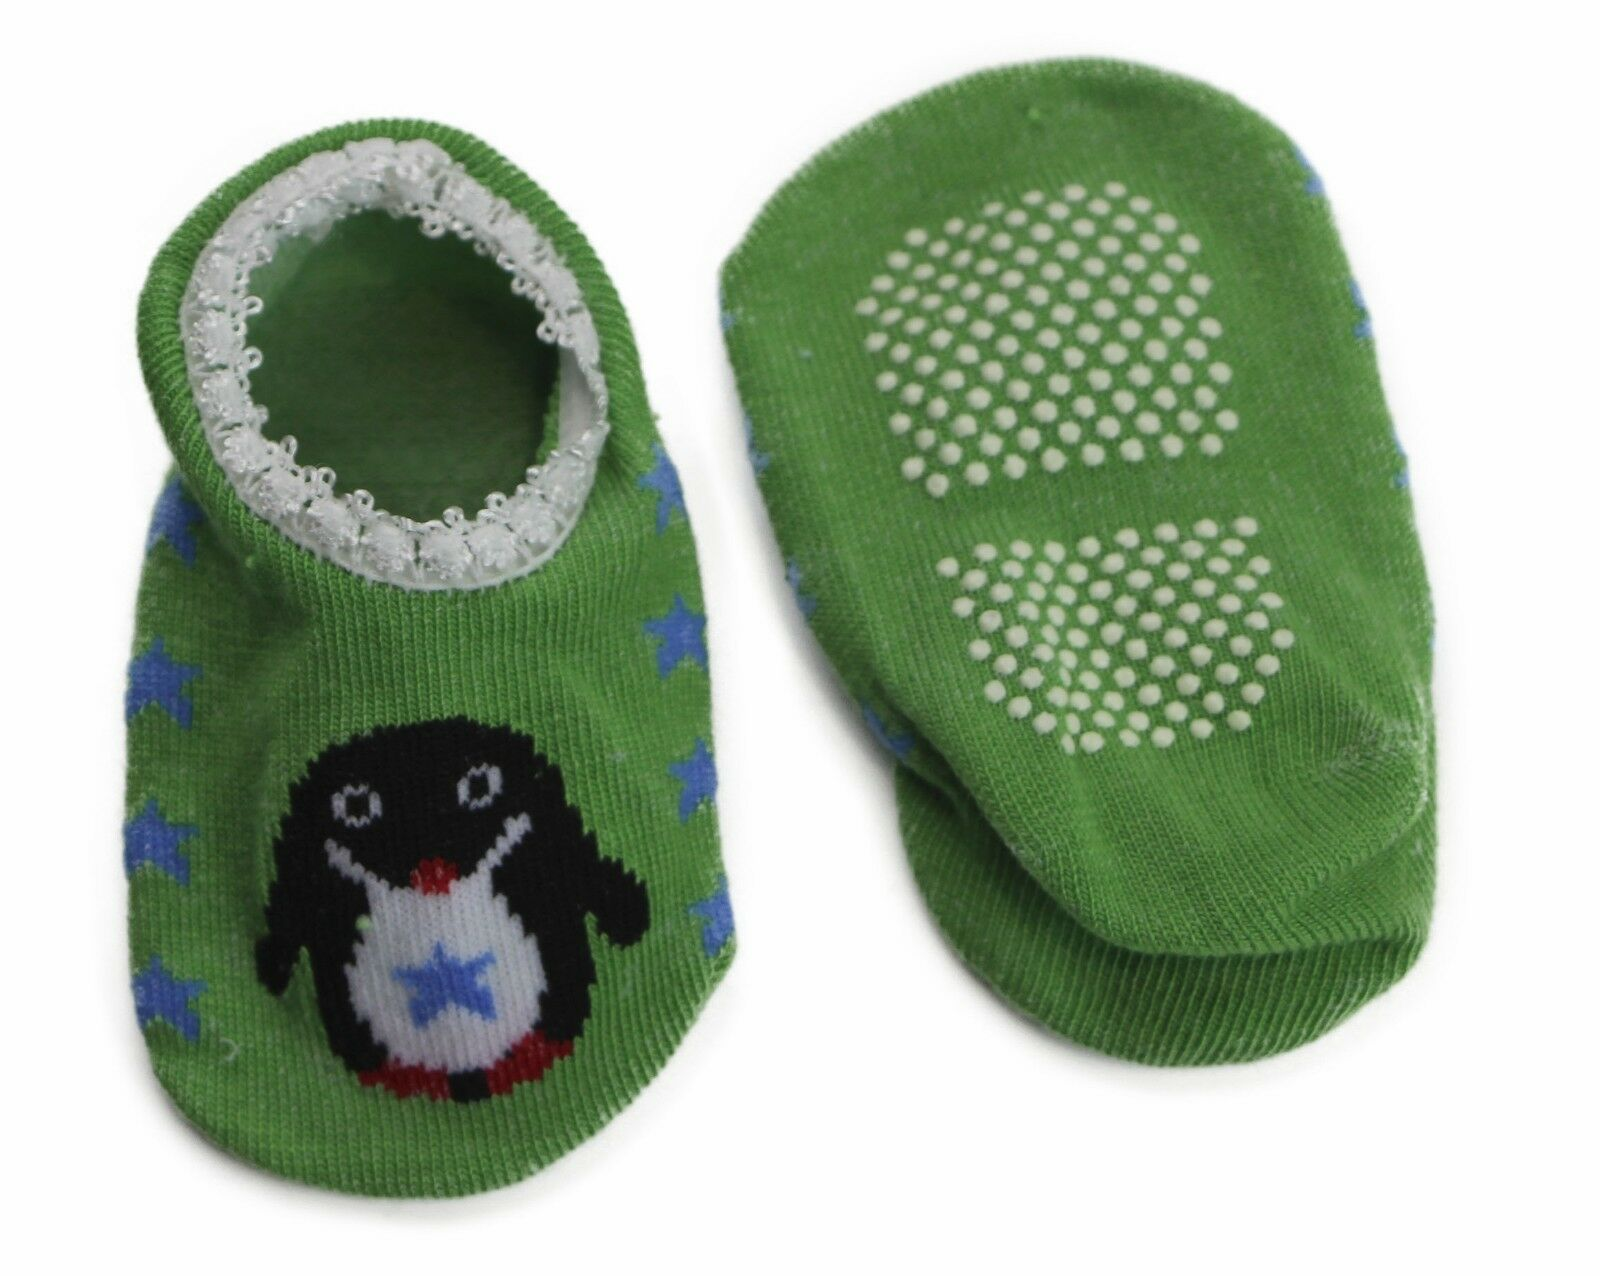 thumbnail 28 - Baby Footlets Kids Toddler Cotton Socks Anti Slip Grip Boys Girls 6-18 Months